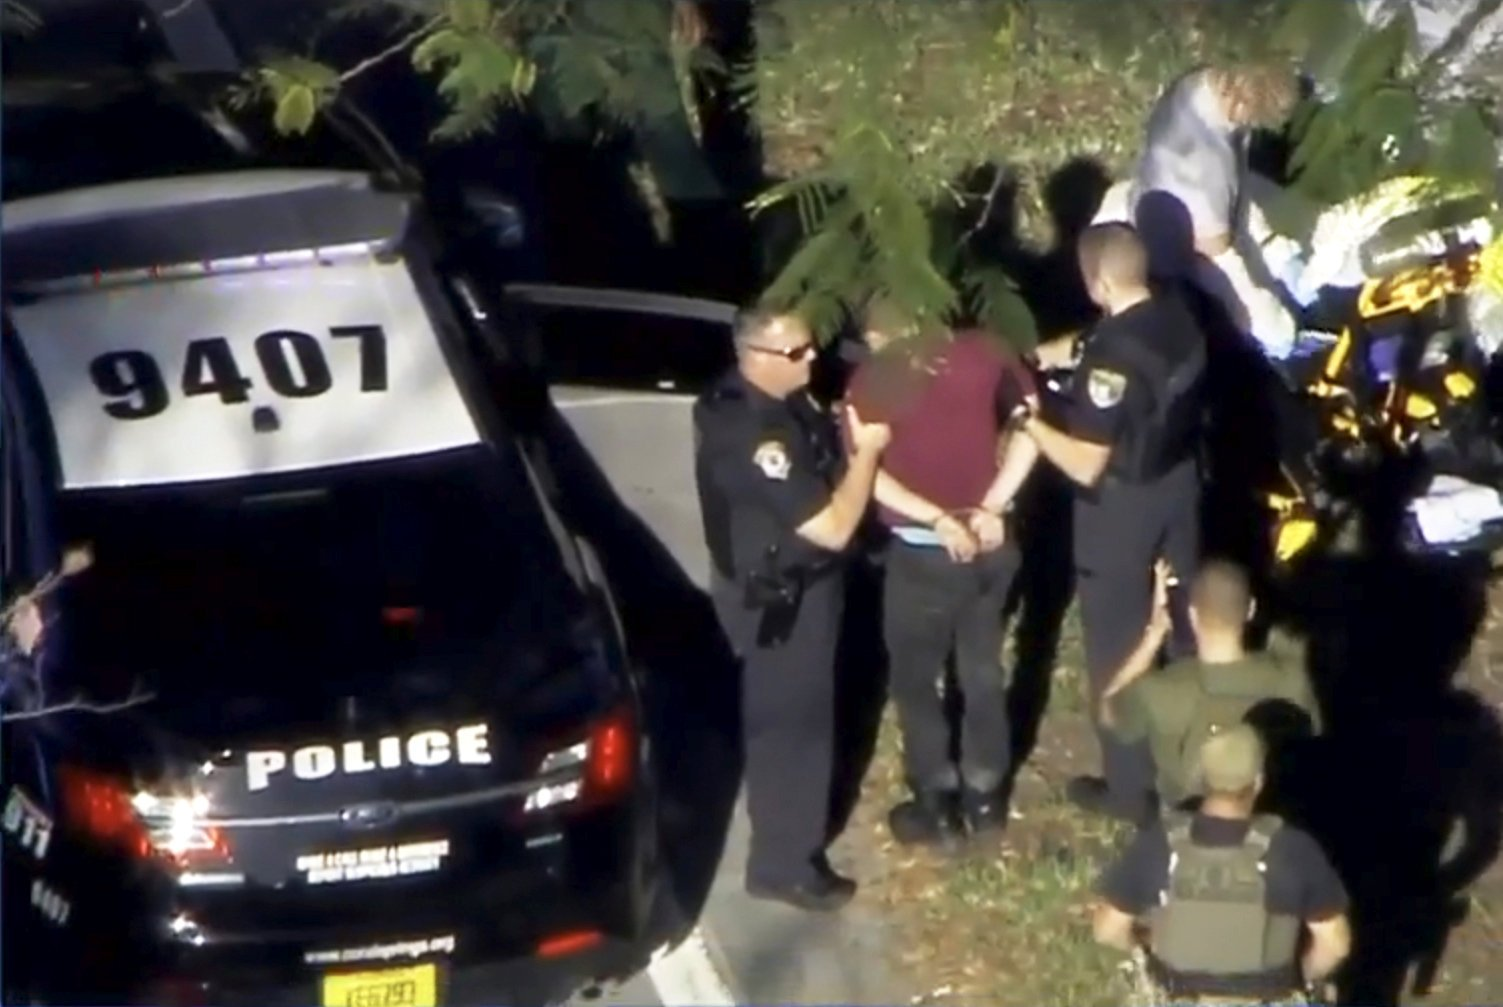 A man placed in handcuffs is led by police near Marjory Stoneman Douglas High School following a shooting incident in Parkland, Fla. Feb. 14, 2018 in a still image from video.